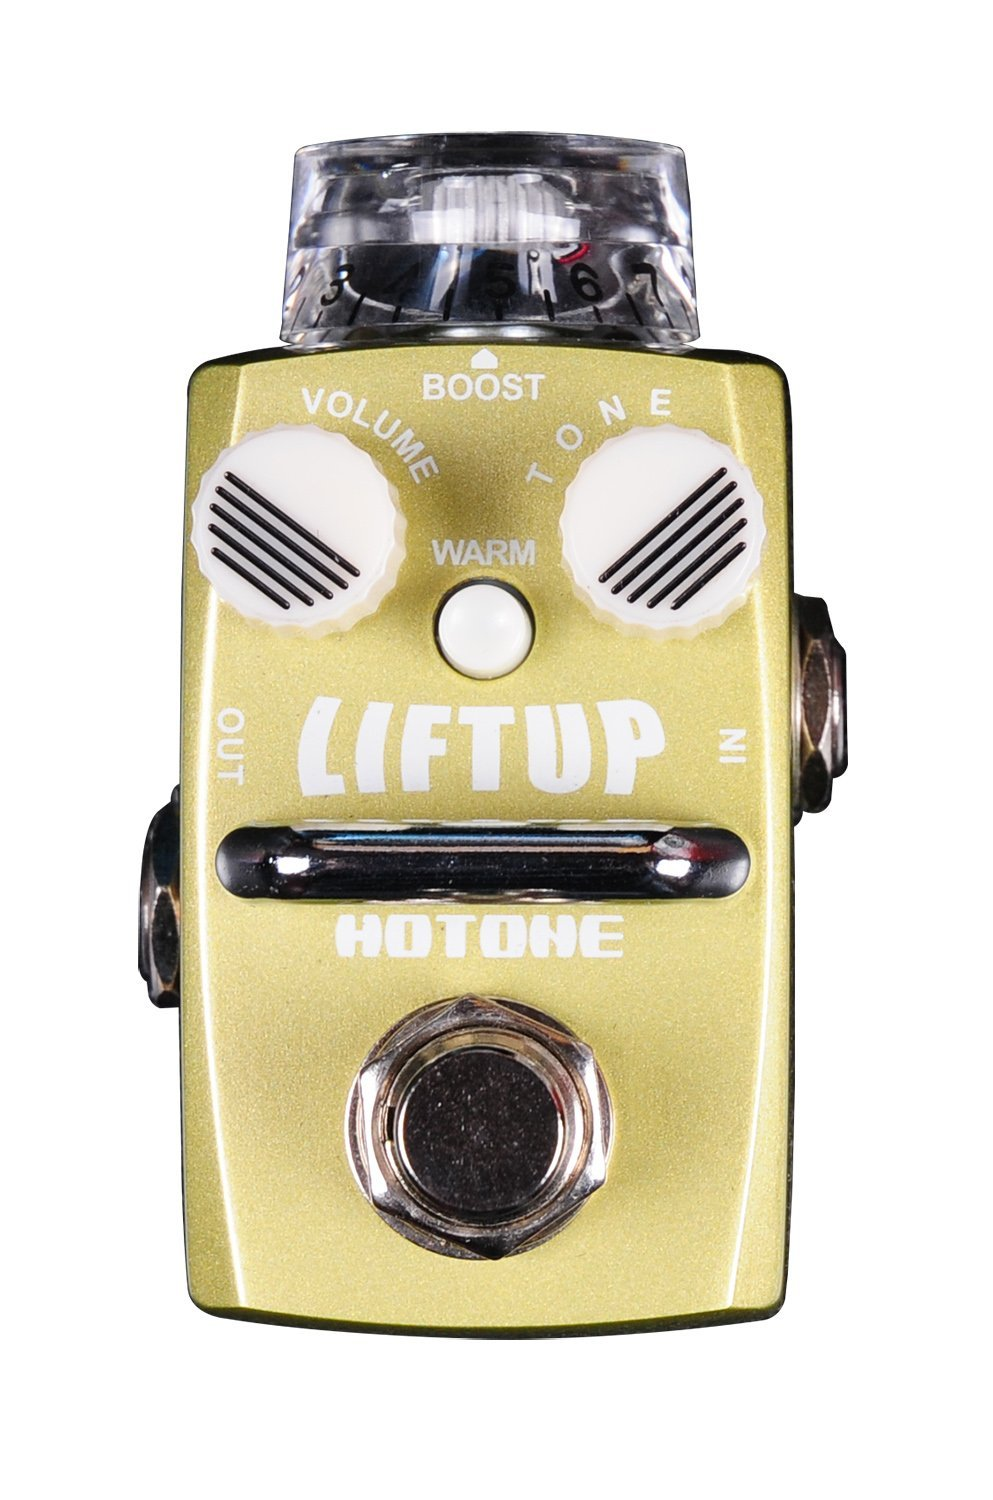 Hotone Skyline LIFT Up Clean Volume Boost Guitar Stompbox with True Bypass Footswitch (TPSDB1)